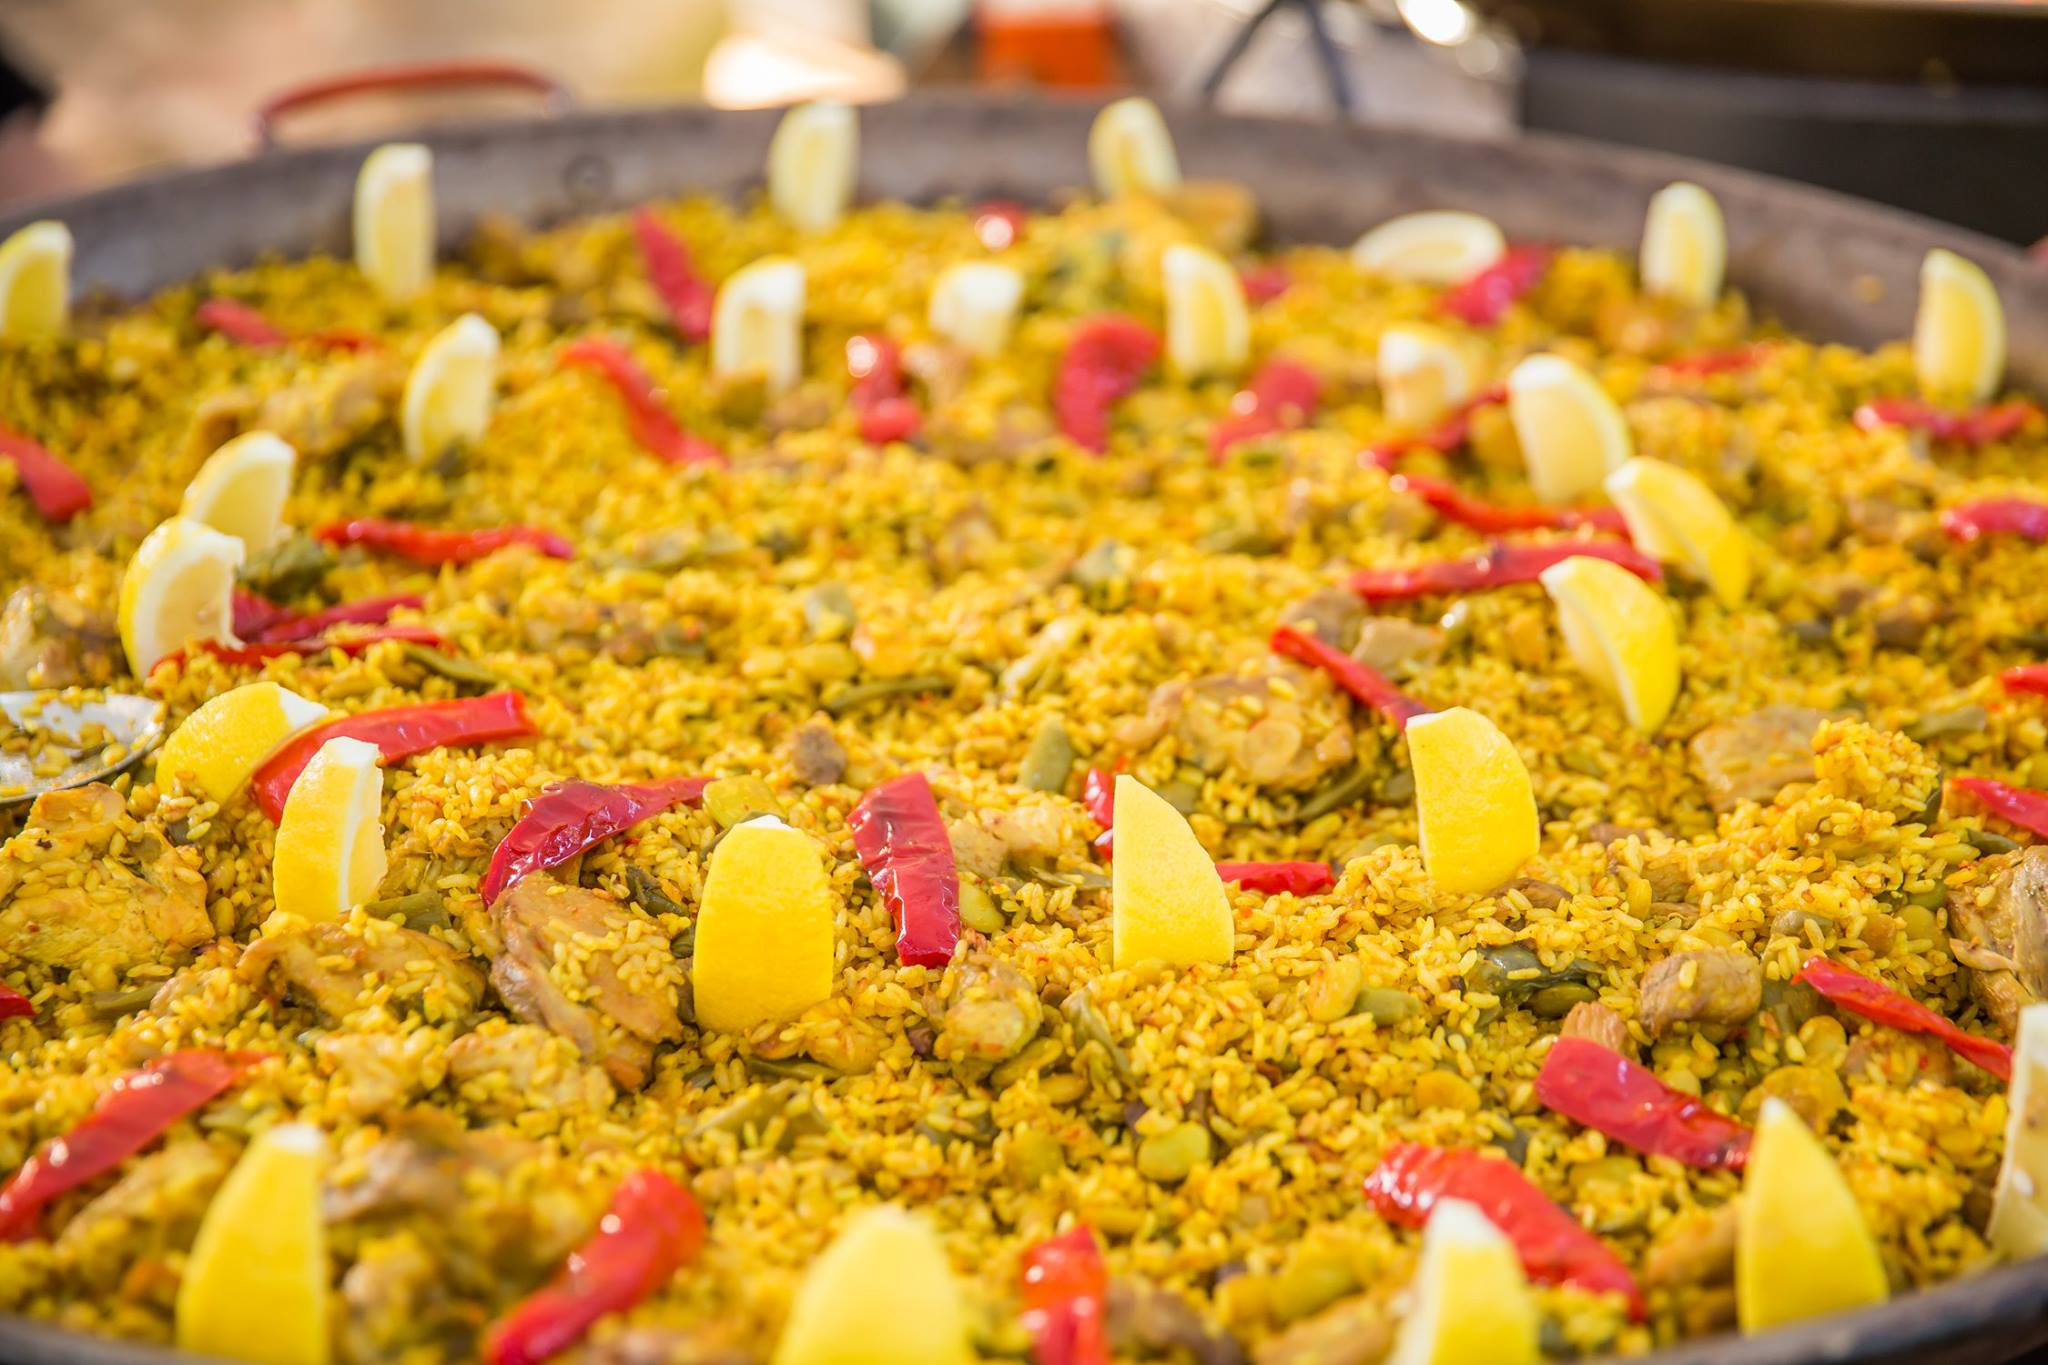 Paella will be prepared and served at the 500th Birthday of Pedro Menéndez, St. Augustine's founder,, at the Noche de Festival gala